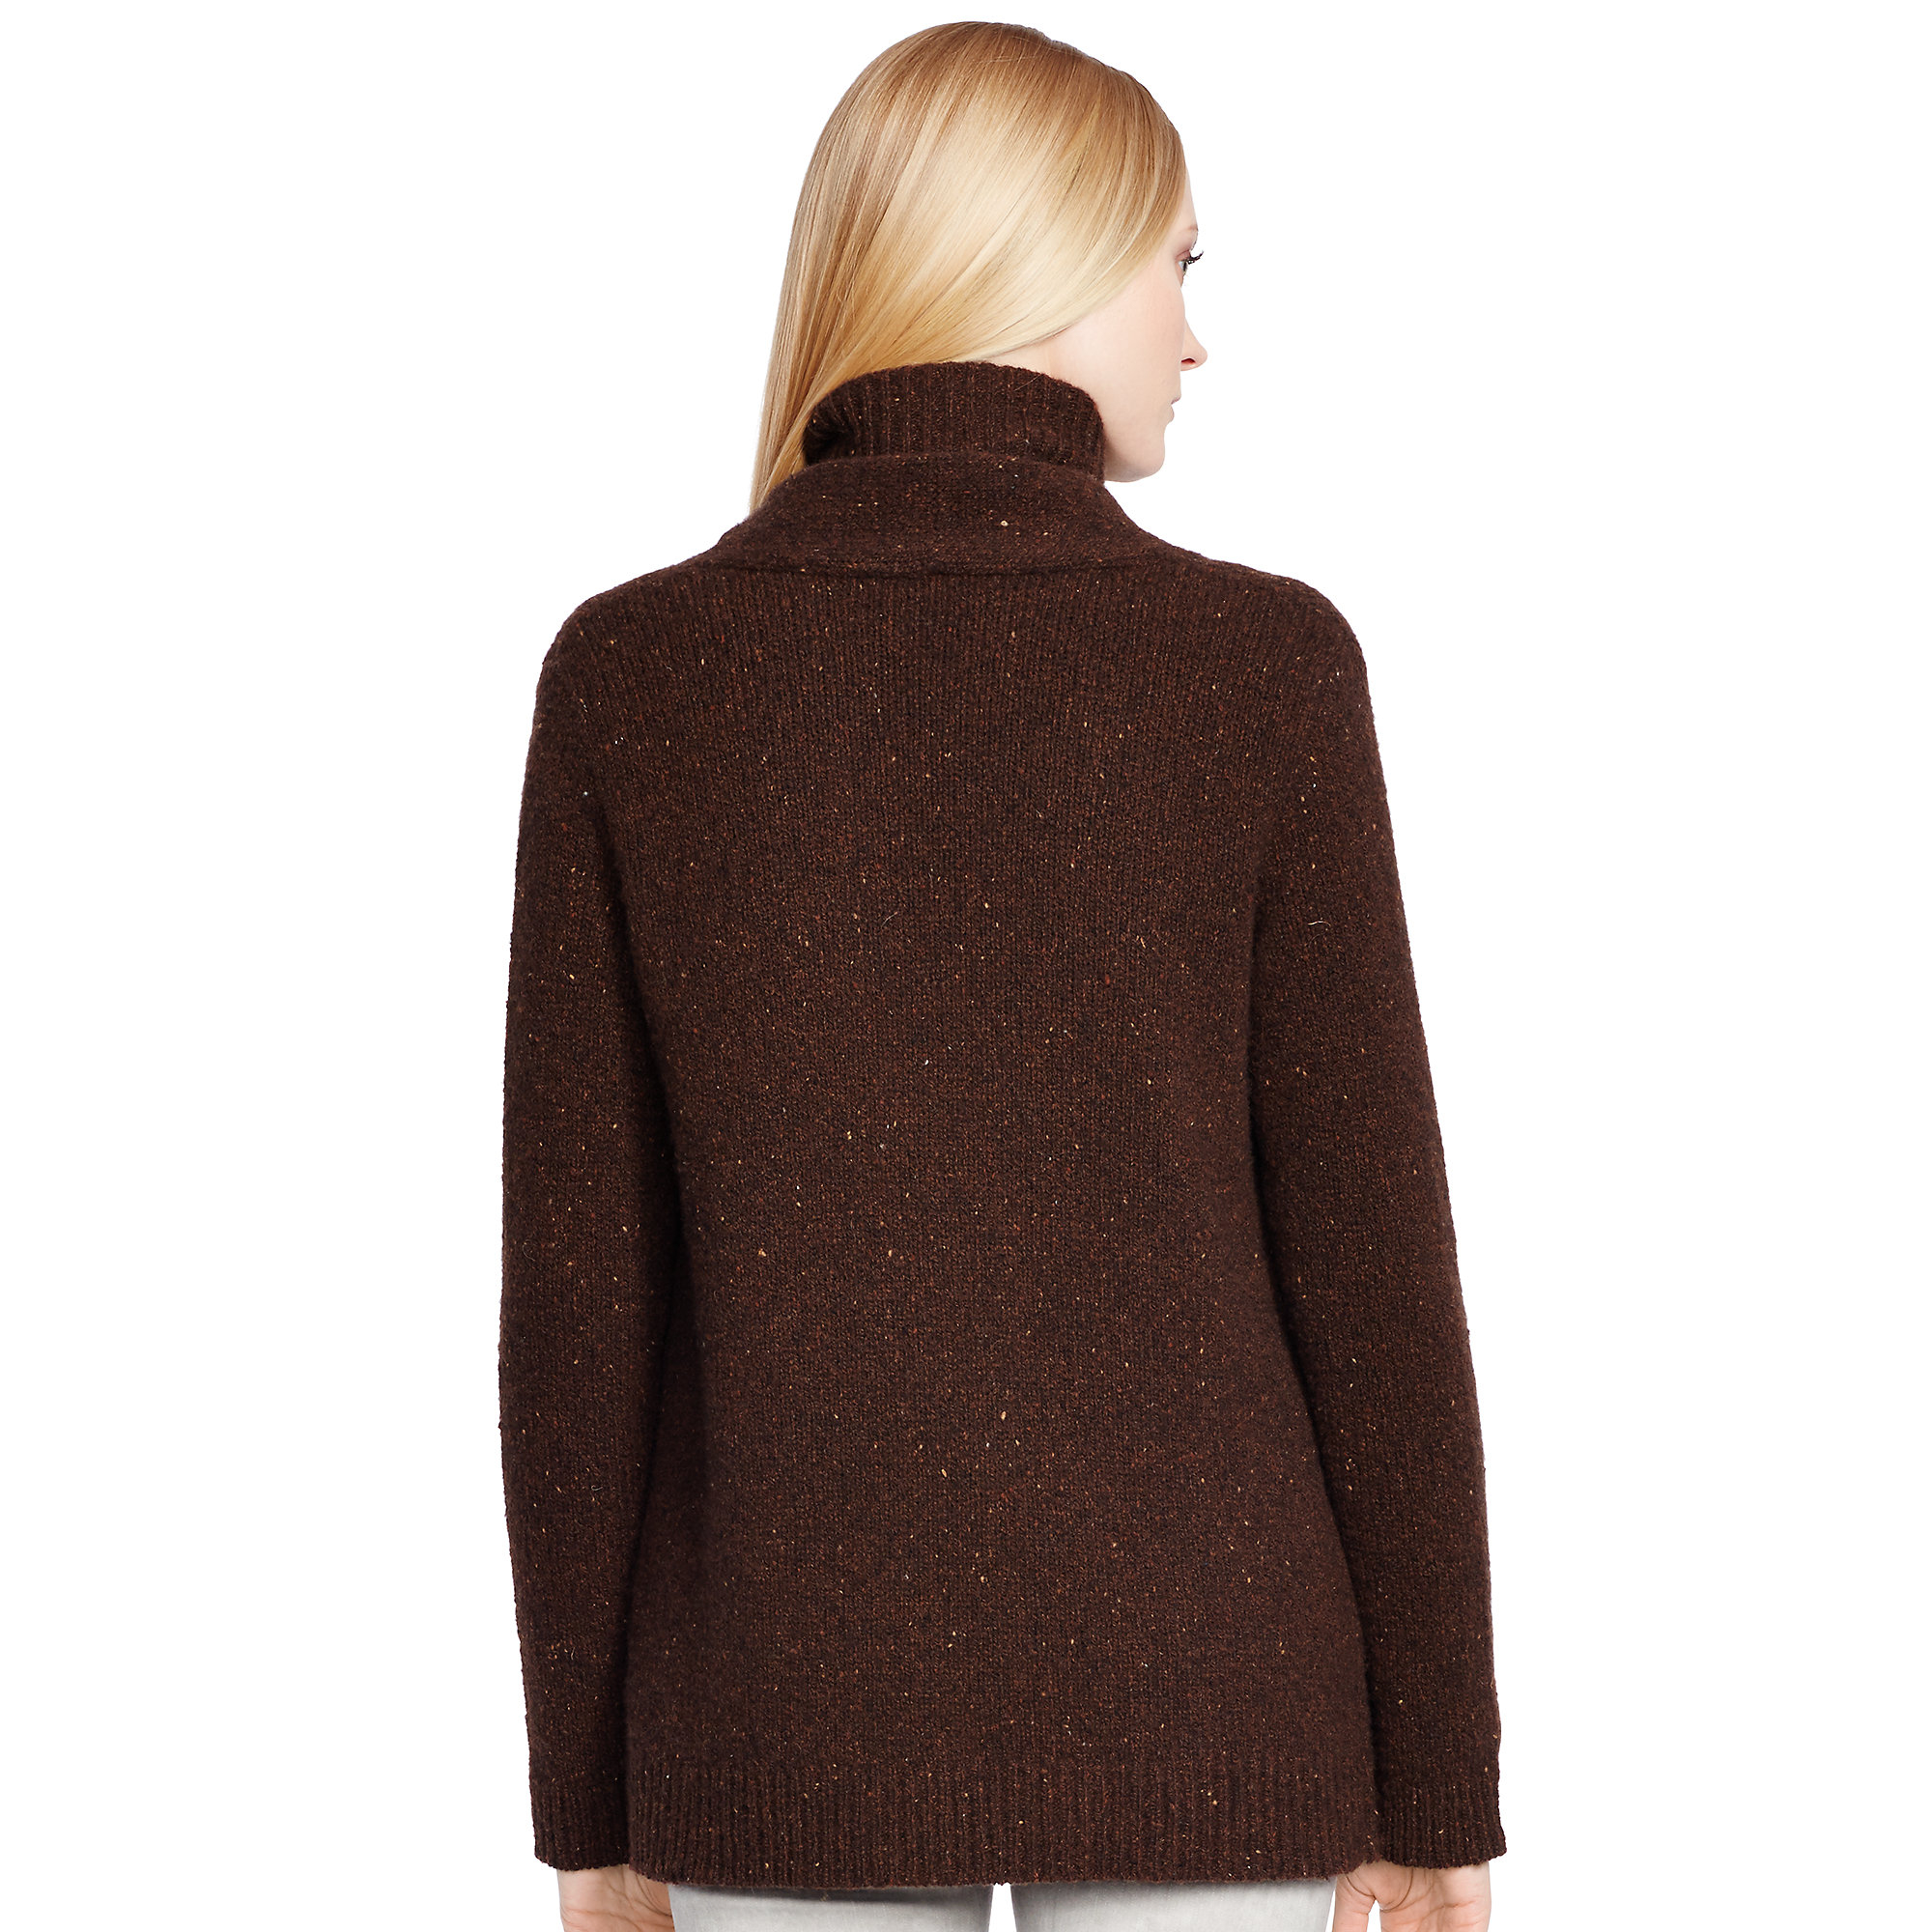 Ralph lauren black label Cashmere Open-front Cardigan in Brown | Lyst